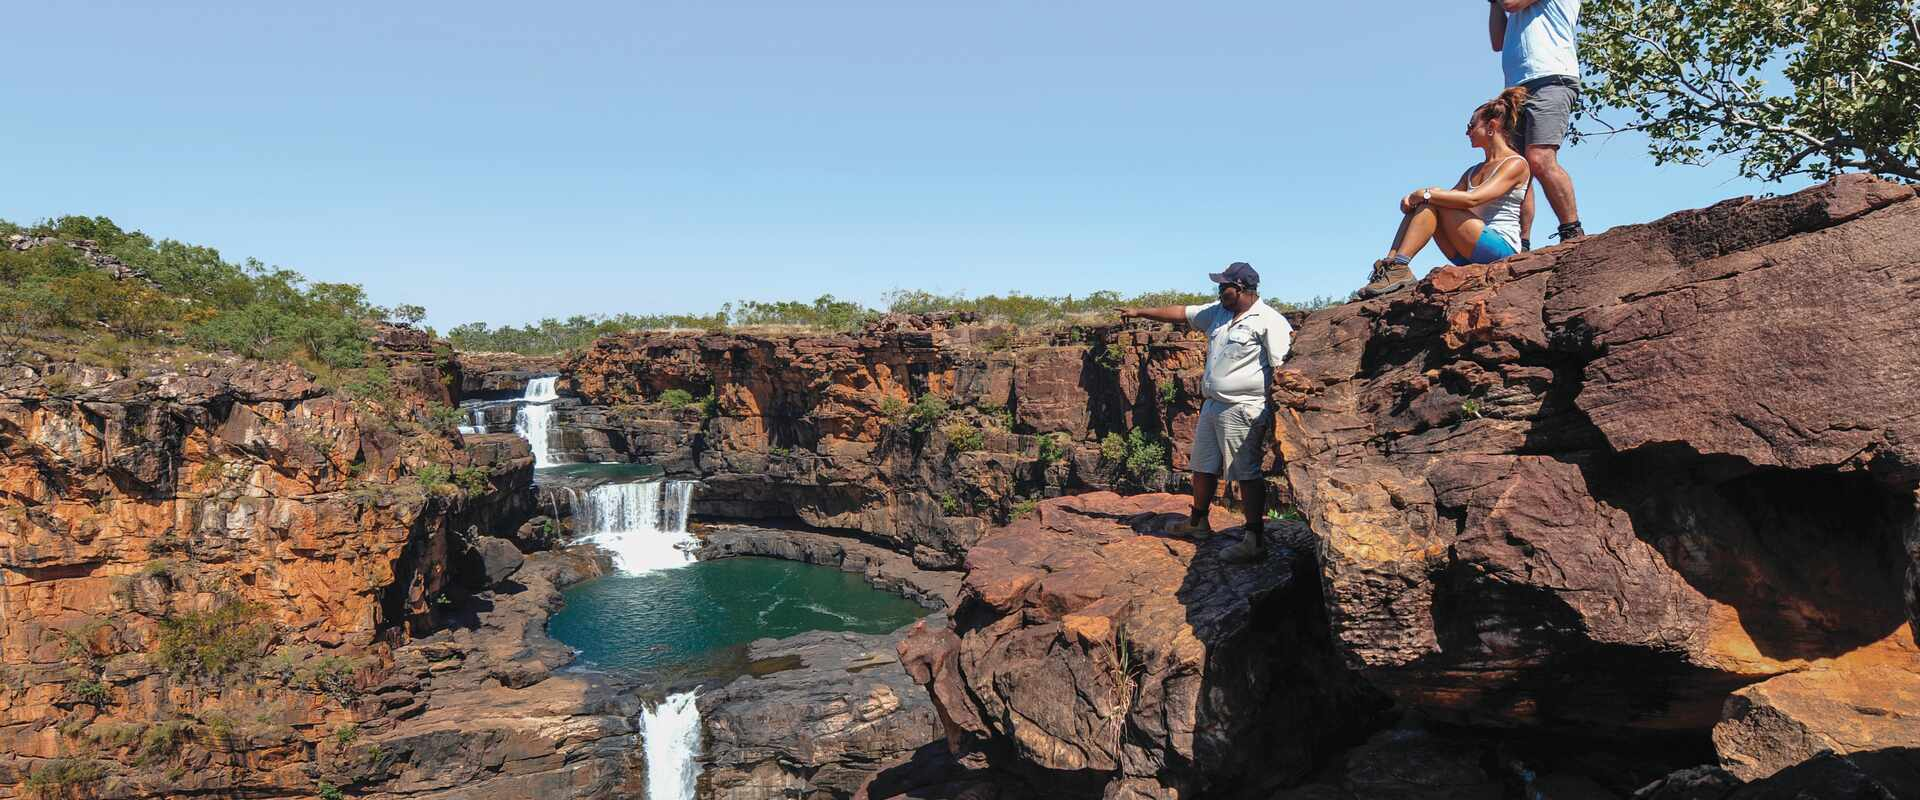 View of two passengers looking over the falls with a guide, Western Australia